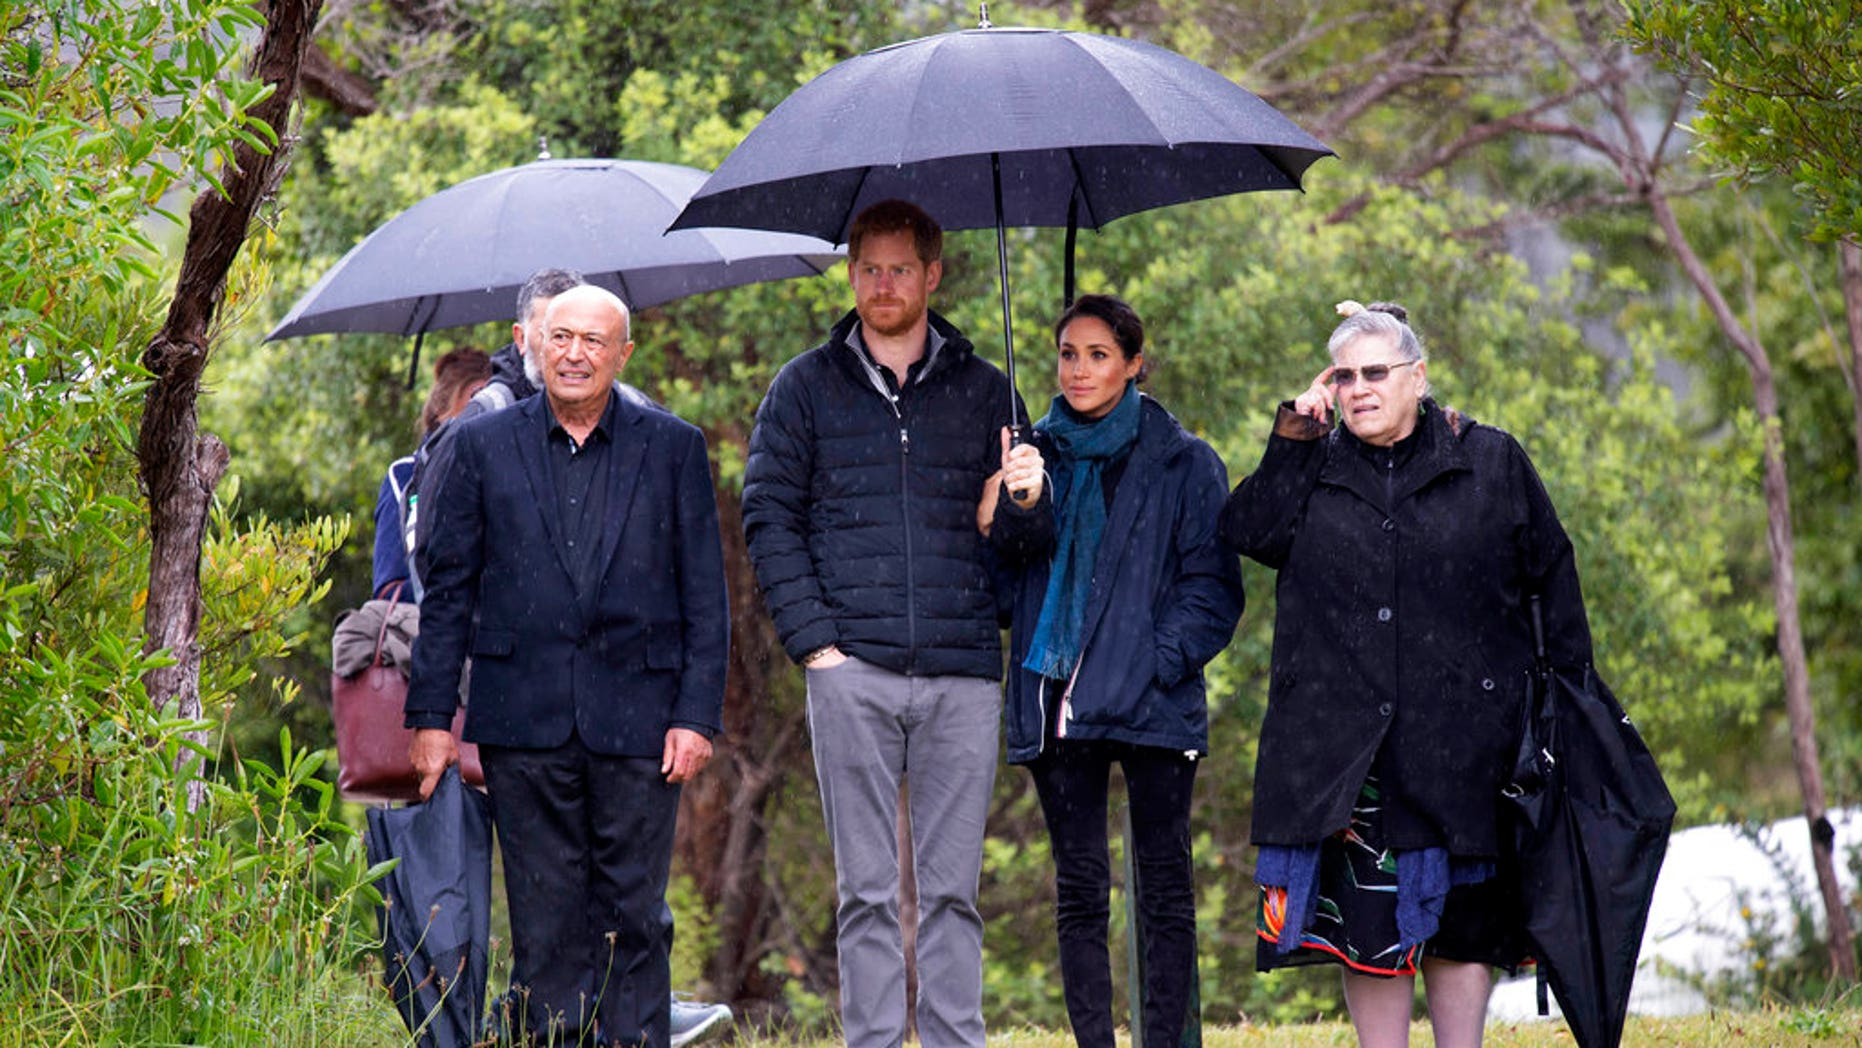 Prince Harry mentioned Duchess Meghan's growing baby bump while thanking fans in New Zealand.